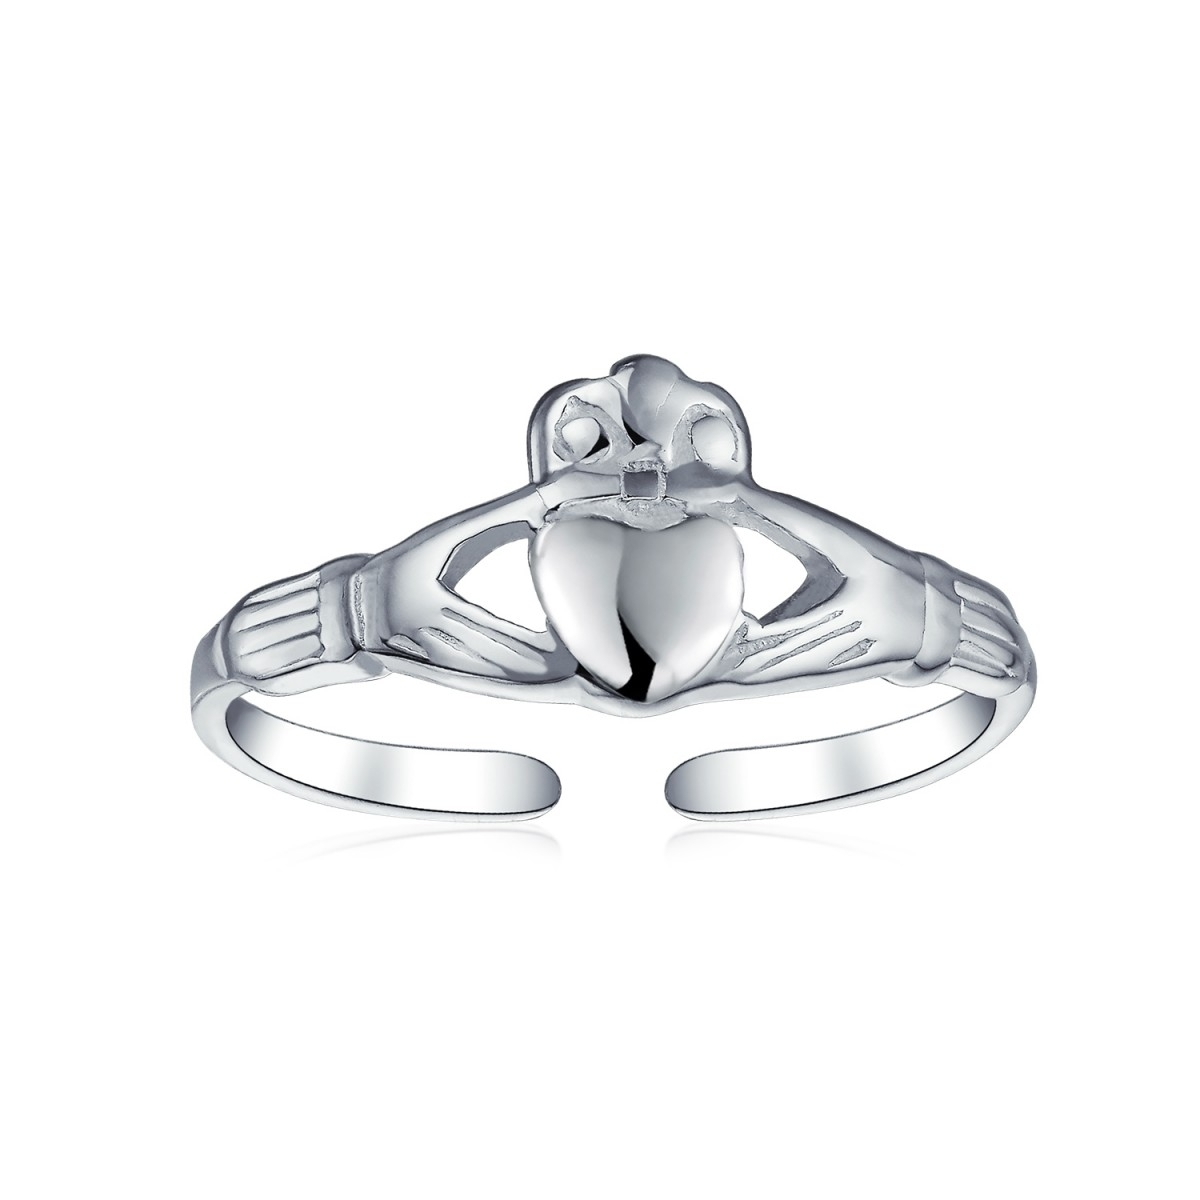 925 Silver Celtic Midi Ring Adjustable Claddagh Heart Toe Rings For Current Claddagh Toe Rings (Gallery 8 of 15)